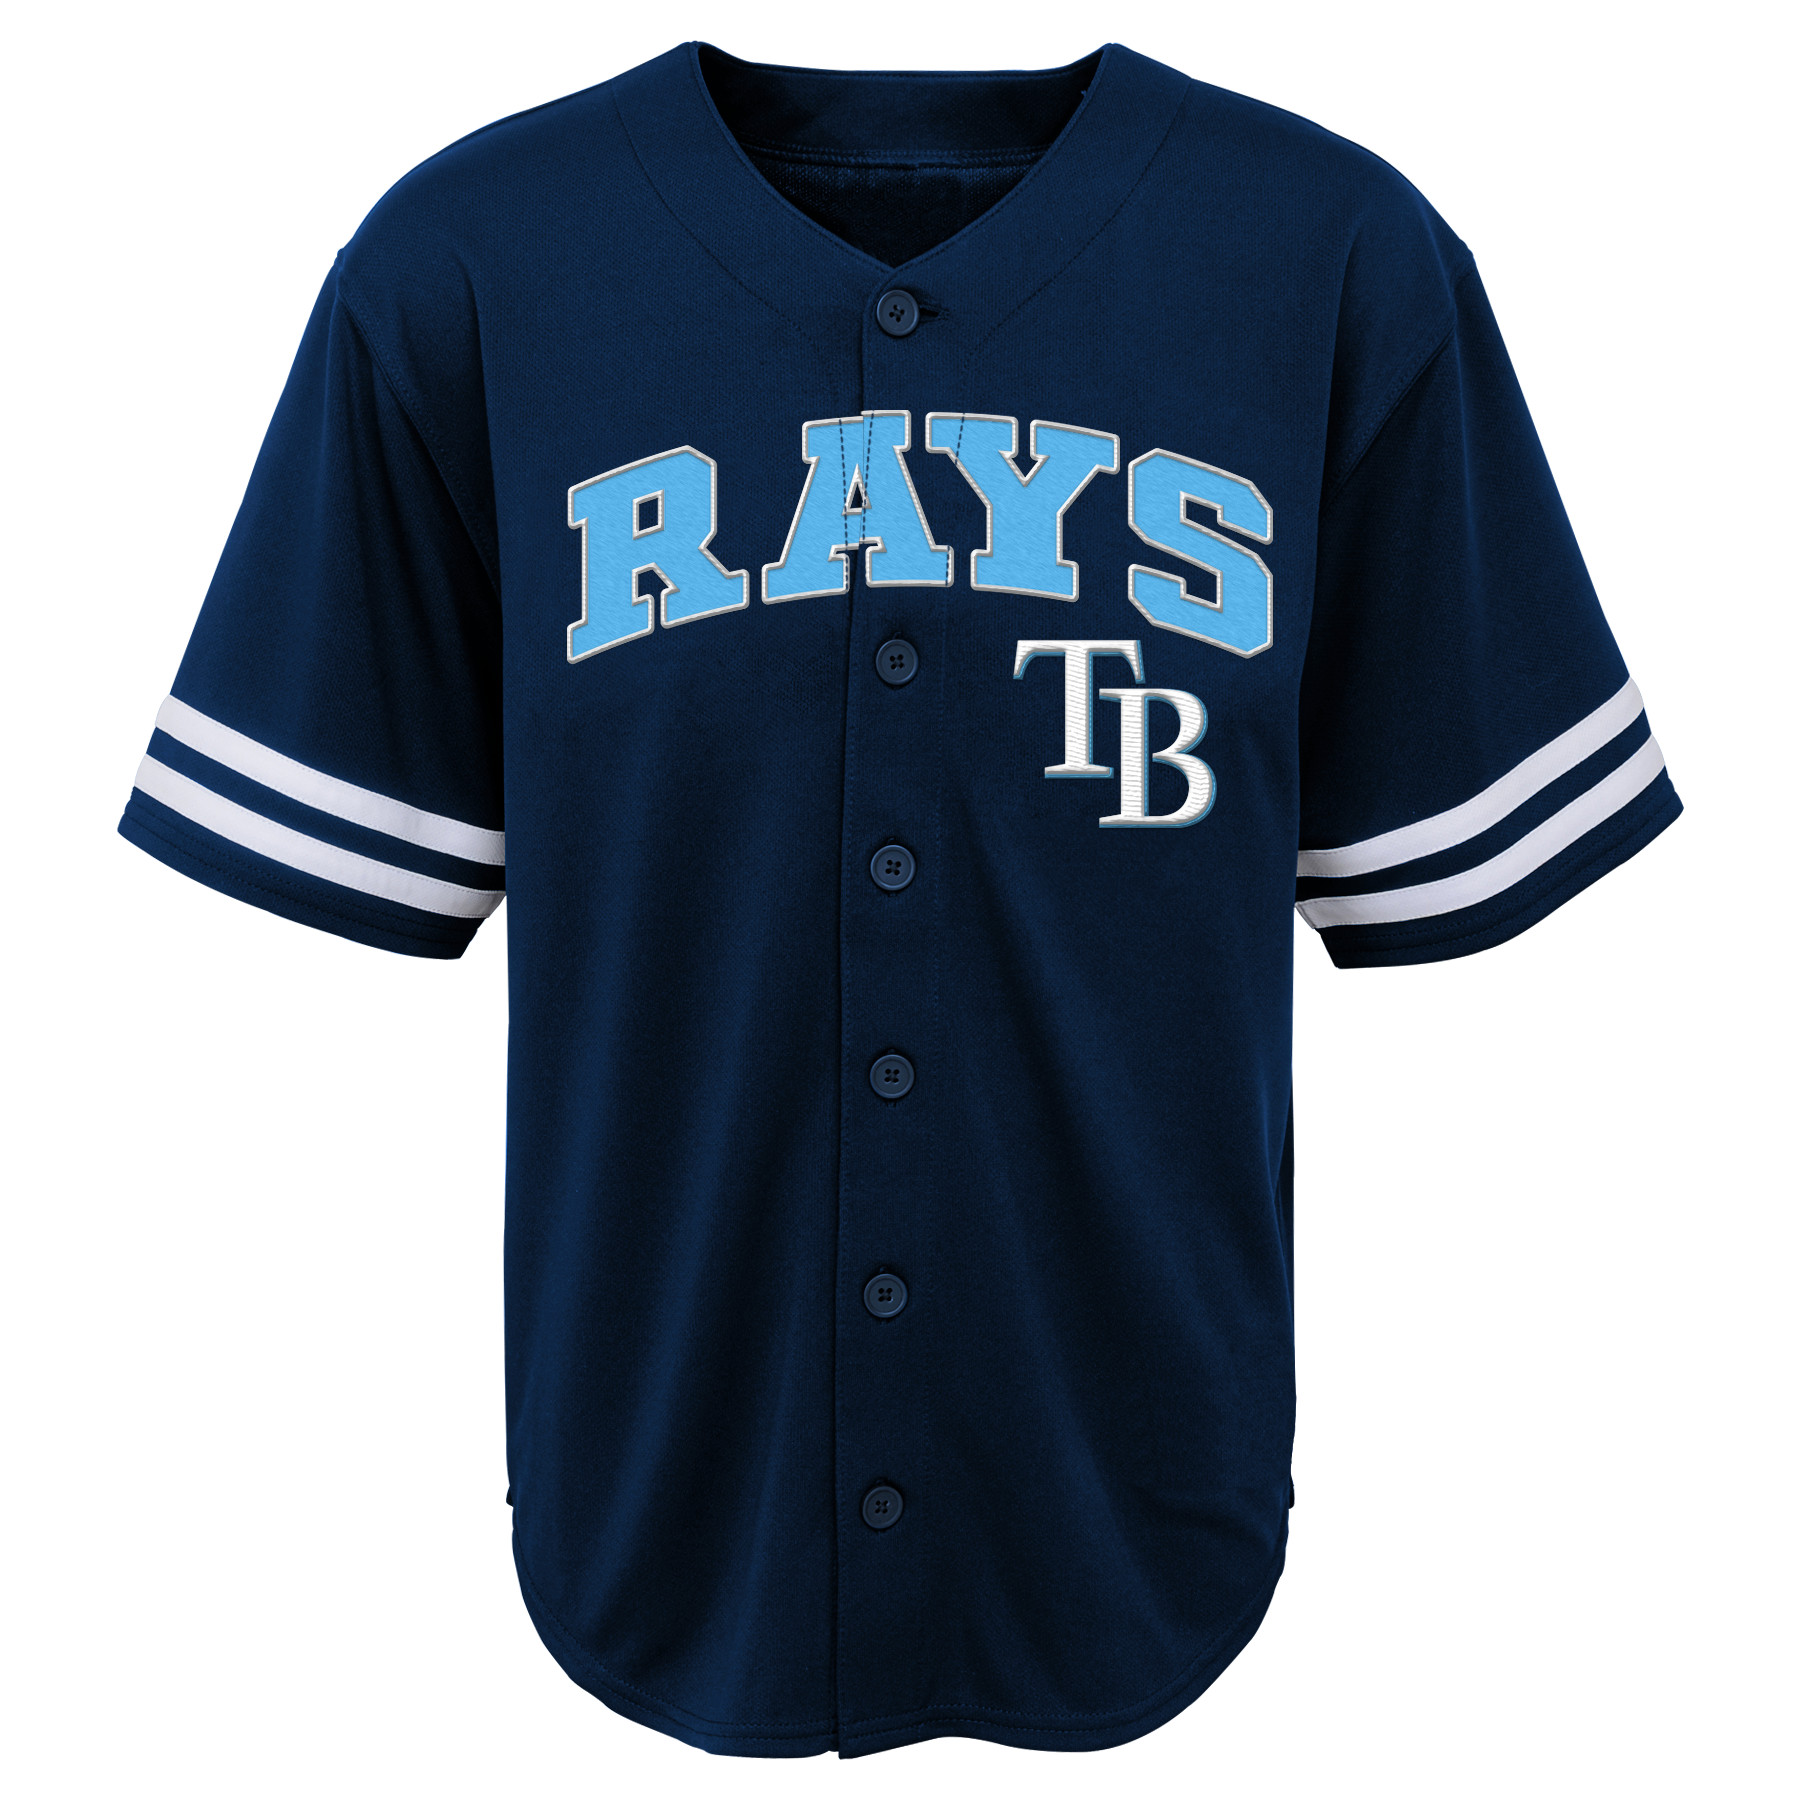 MLB Tampa Bay RAYS TEE Short Sleeve Boys Fashion Jersey Tee 60% Cotton 40% Polyester BLACK Team Tee 4-18